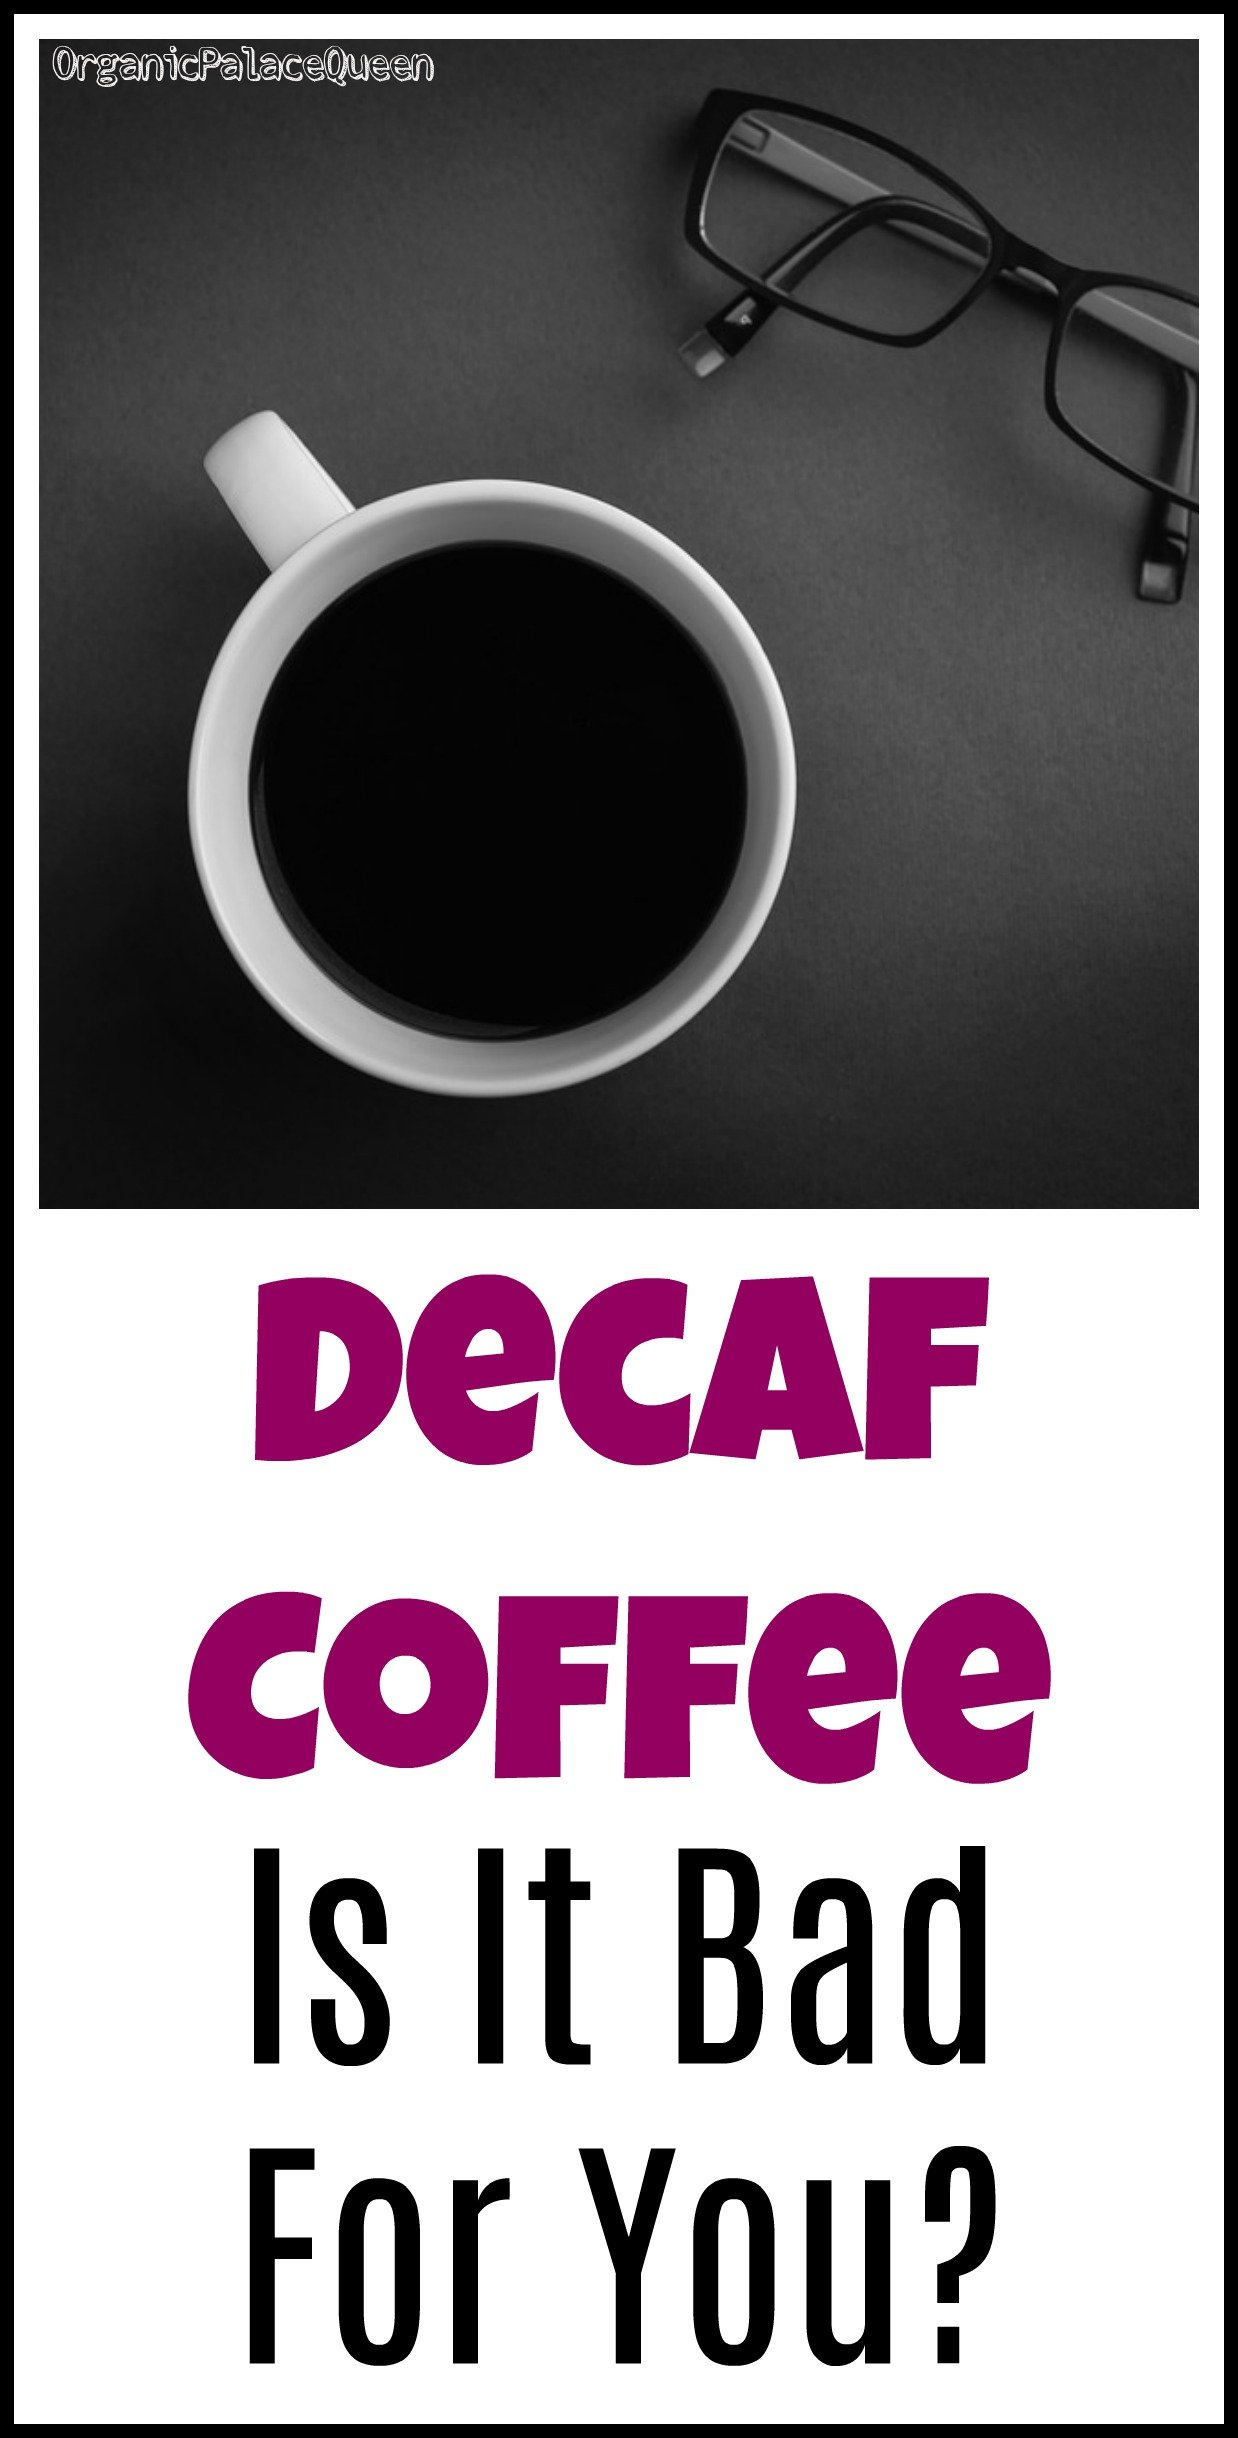 Is decaffeinated coffee bad for you